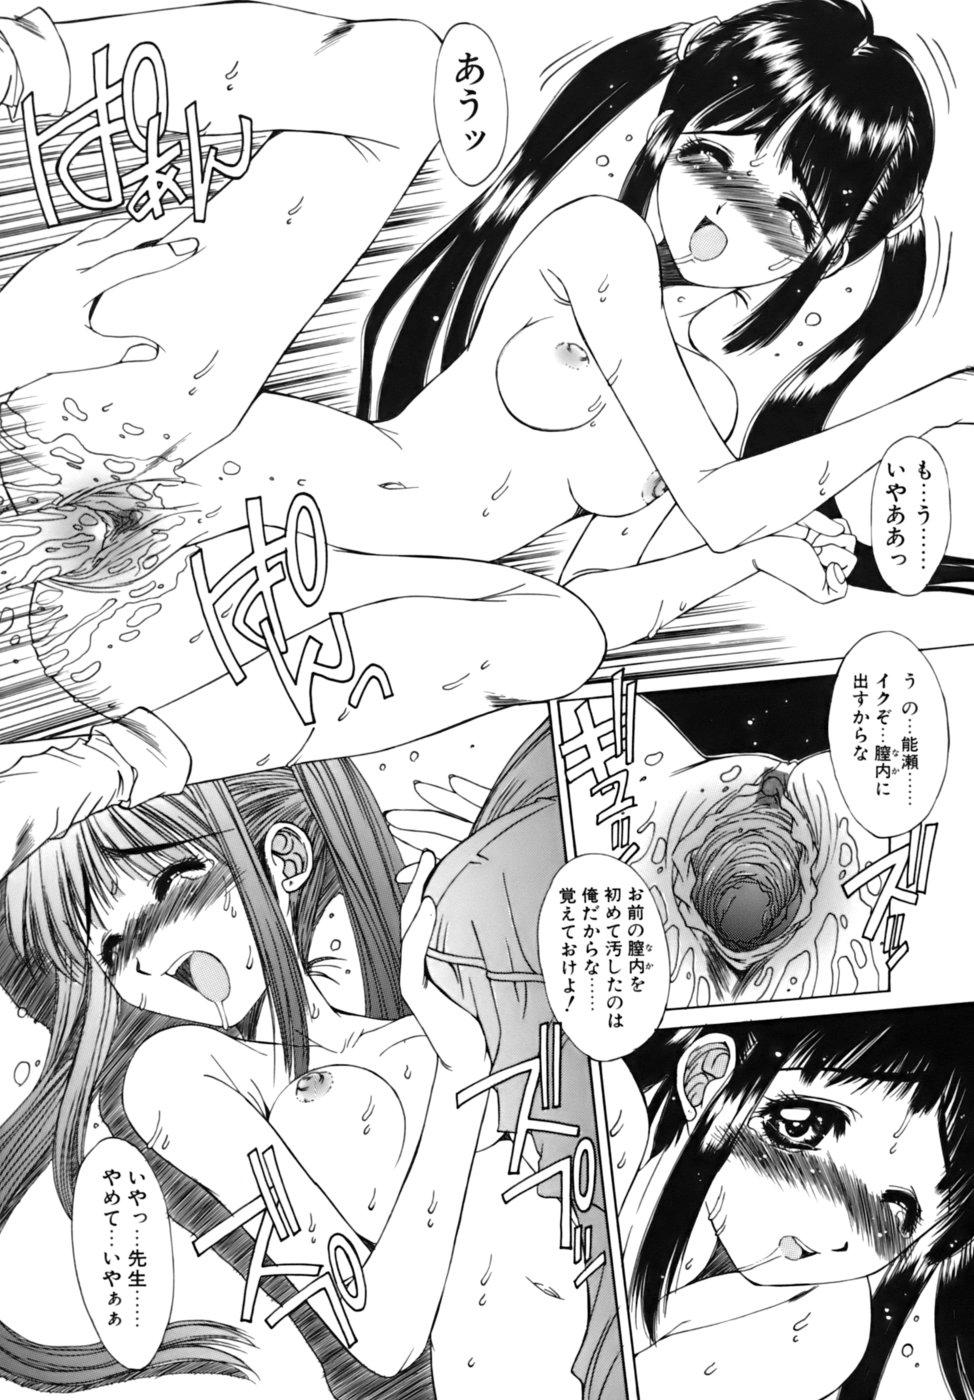 Sange No Koku - At the Time of Scattering Flowers 54